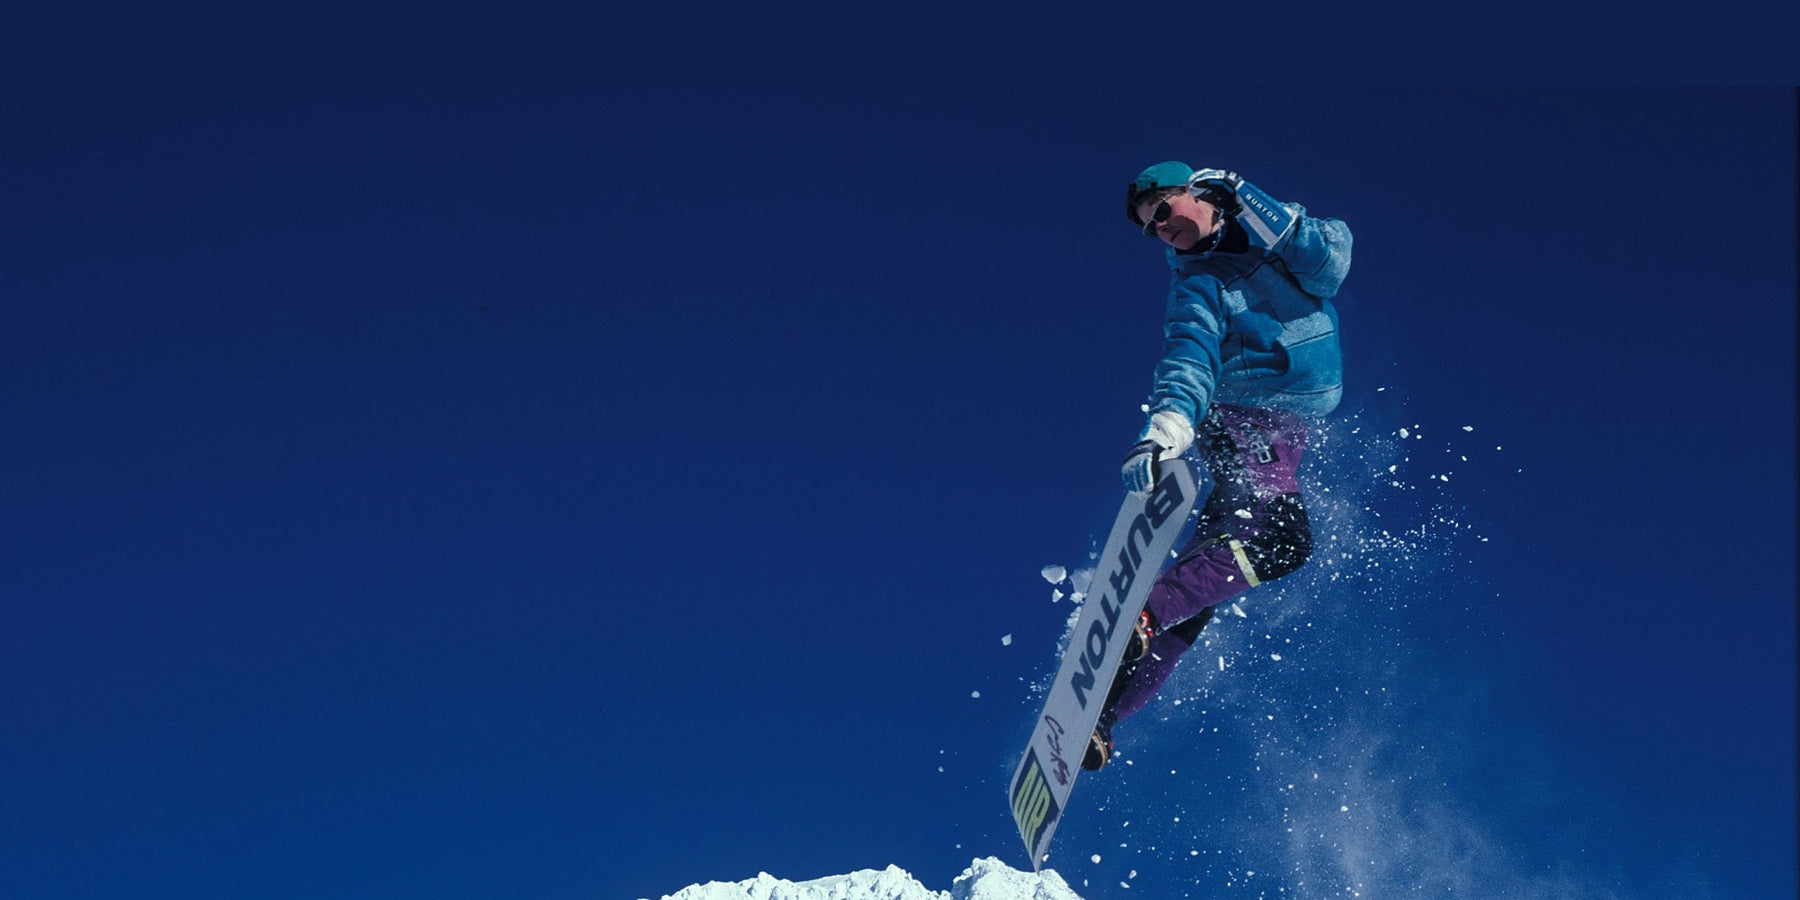 Shred It: 5 of America's Best Ski Resorts